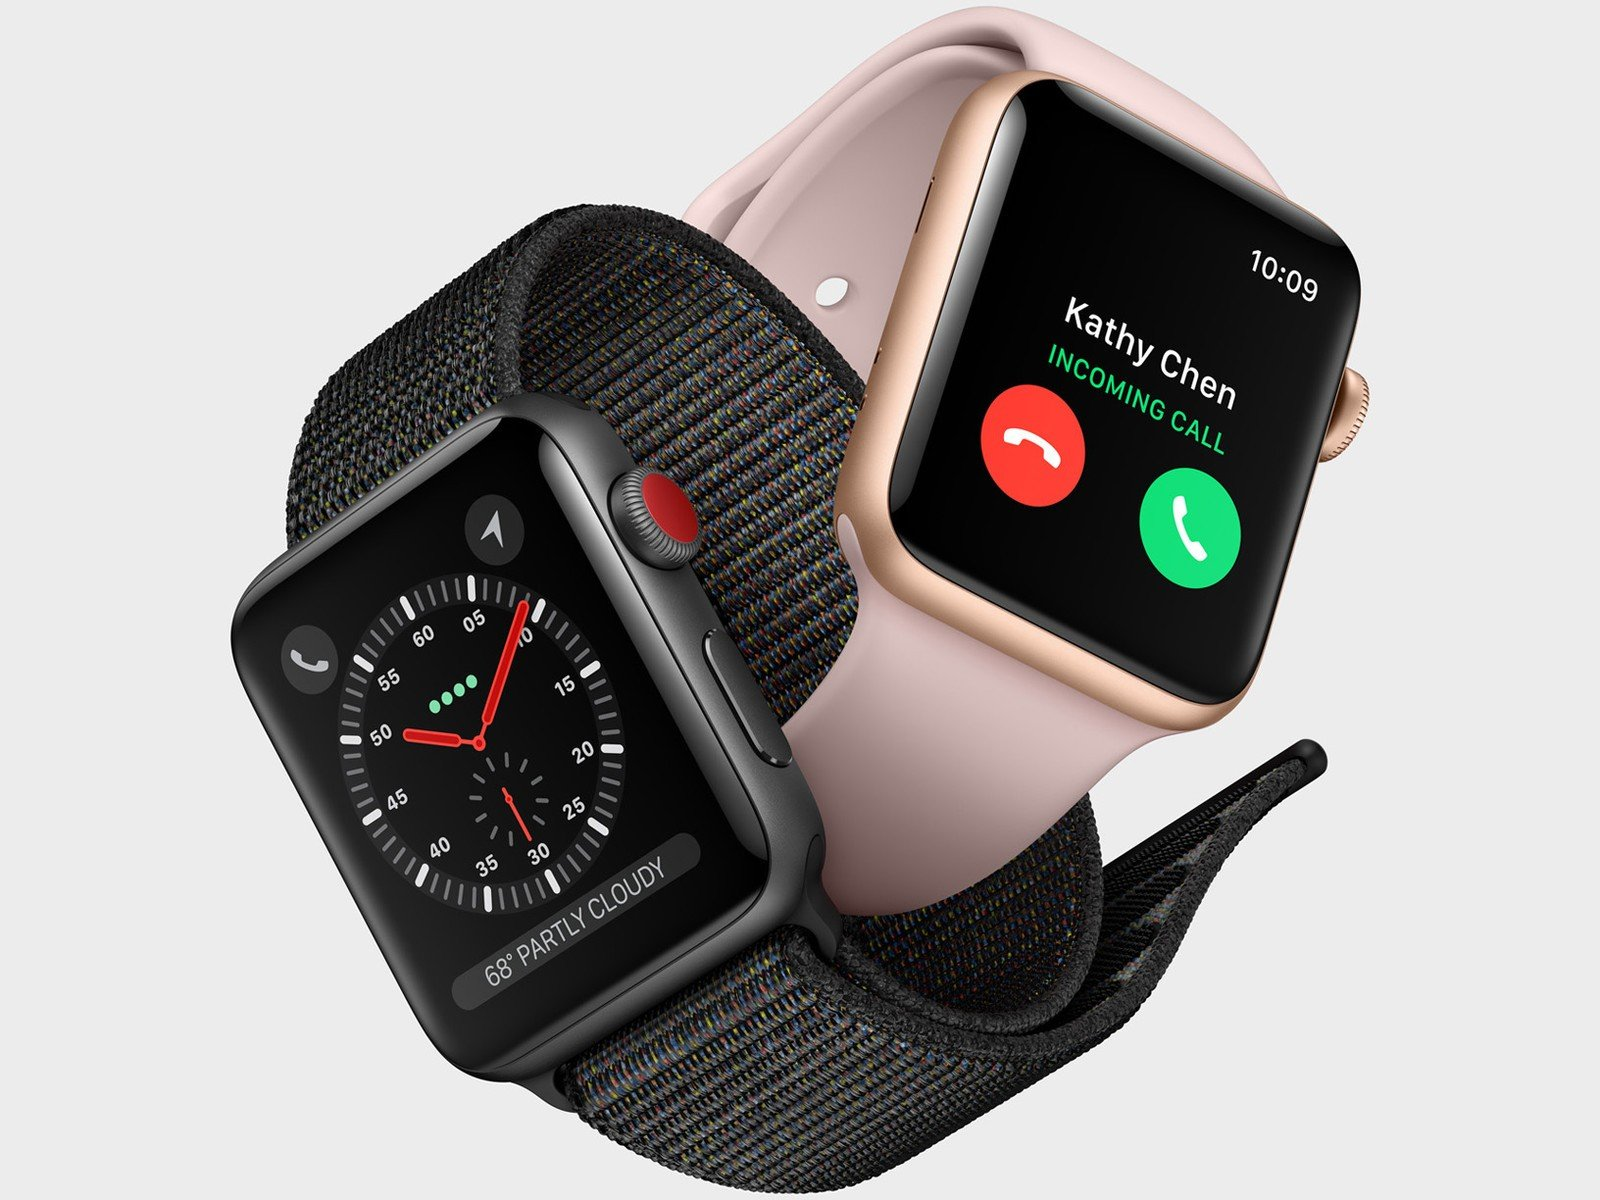 Apple Watch is the best-selling watch on Earth, and it will likely get better with the watchOS 6 update.